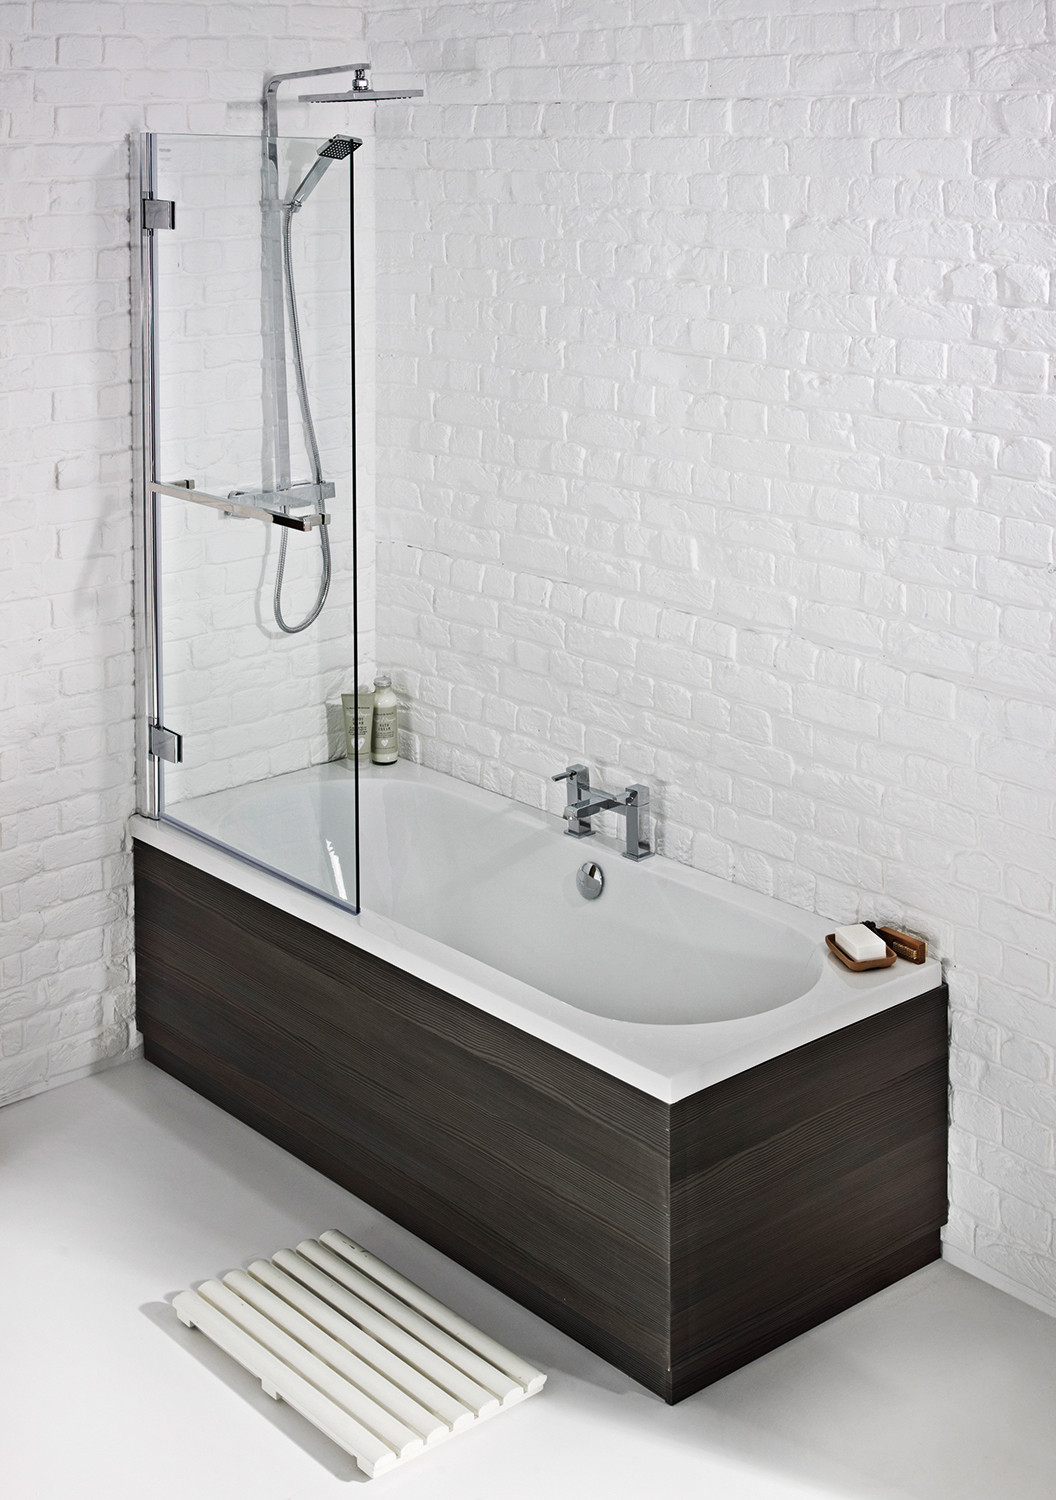 Duo Round Double Ended Straight Bath Frontlinebathrooms Com